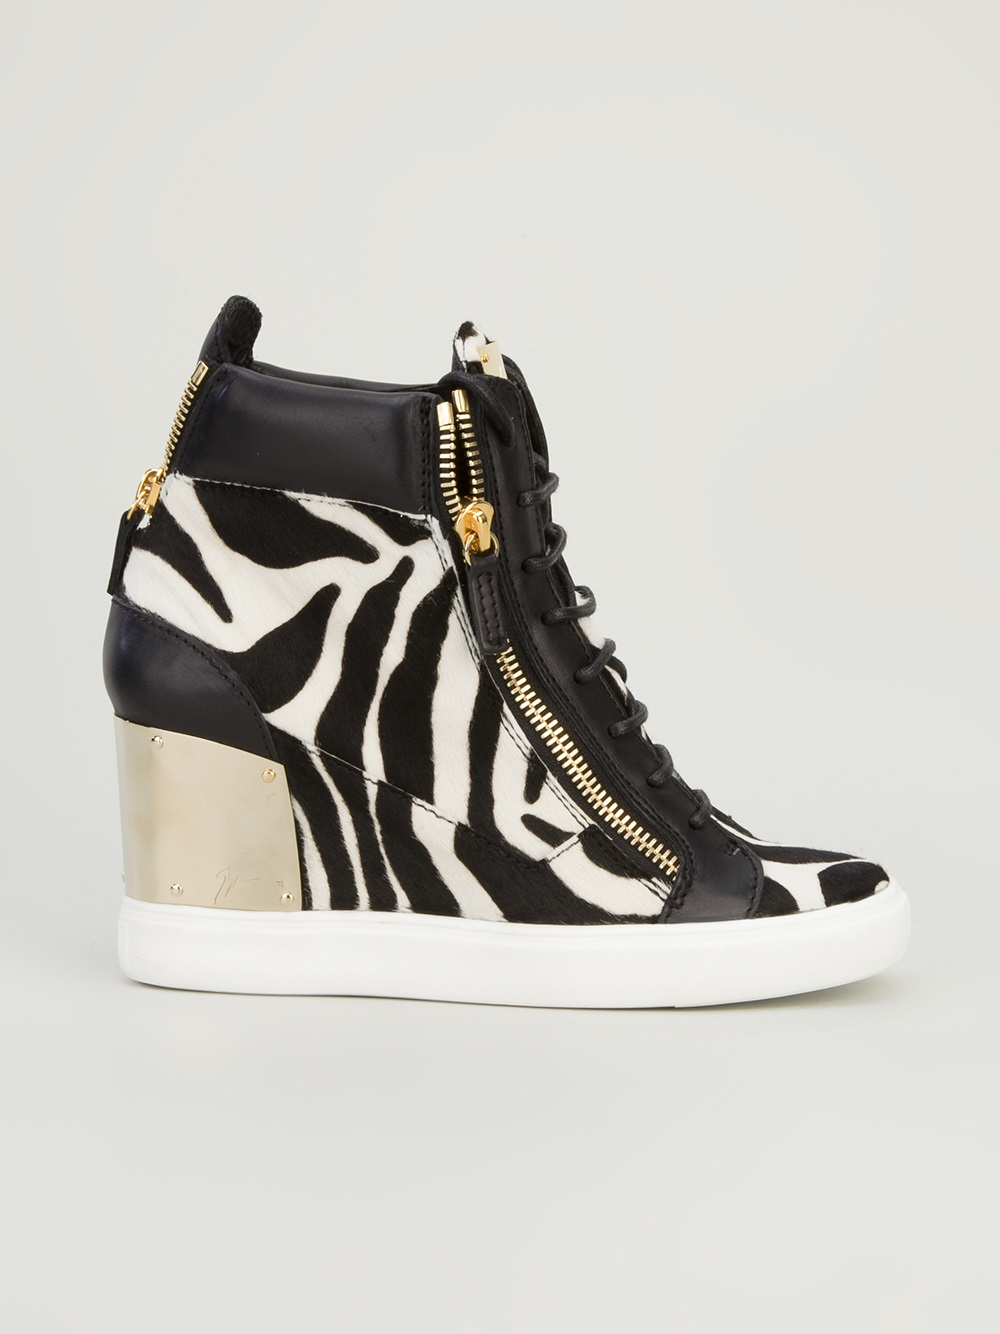 4fe8b6e09498d Gallery. Previously sold at: Farfetch · Women's Wedge Sneakers